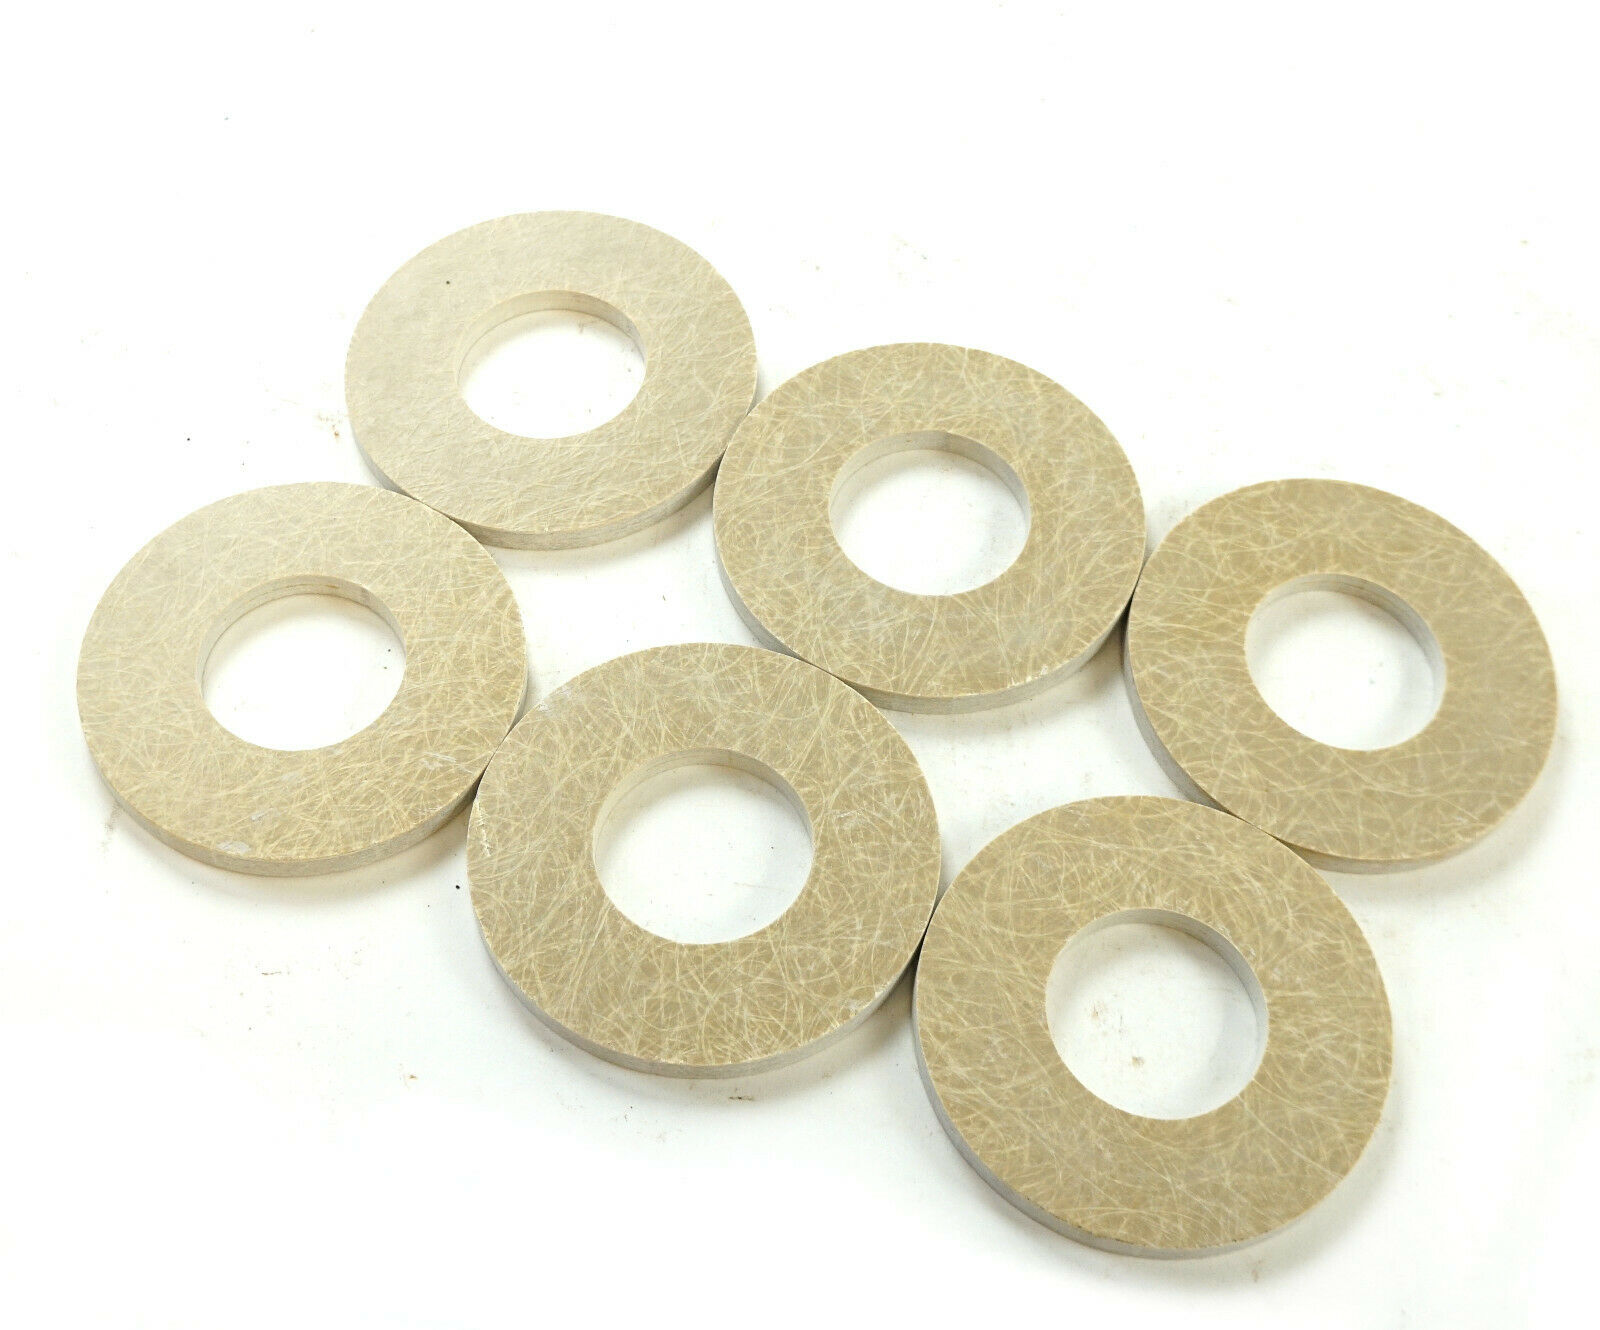 Furnace Fiberglass Flat Washers Lot 25PC